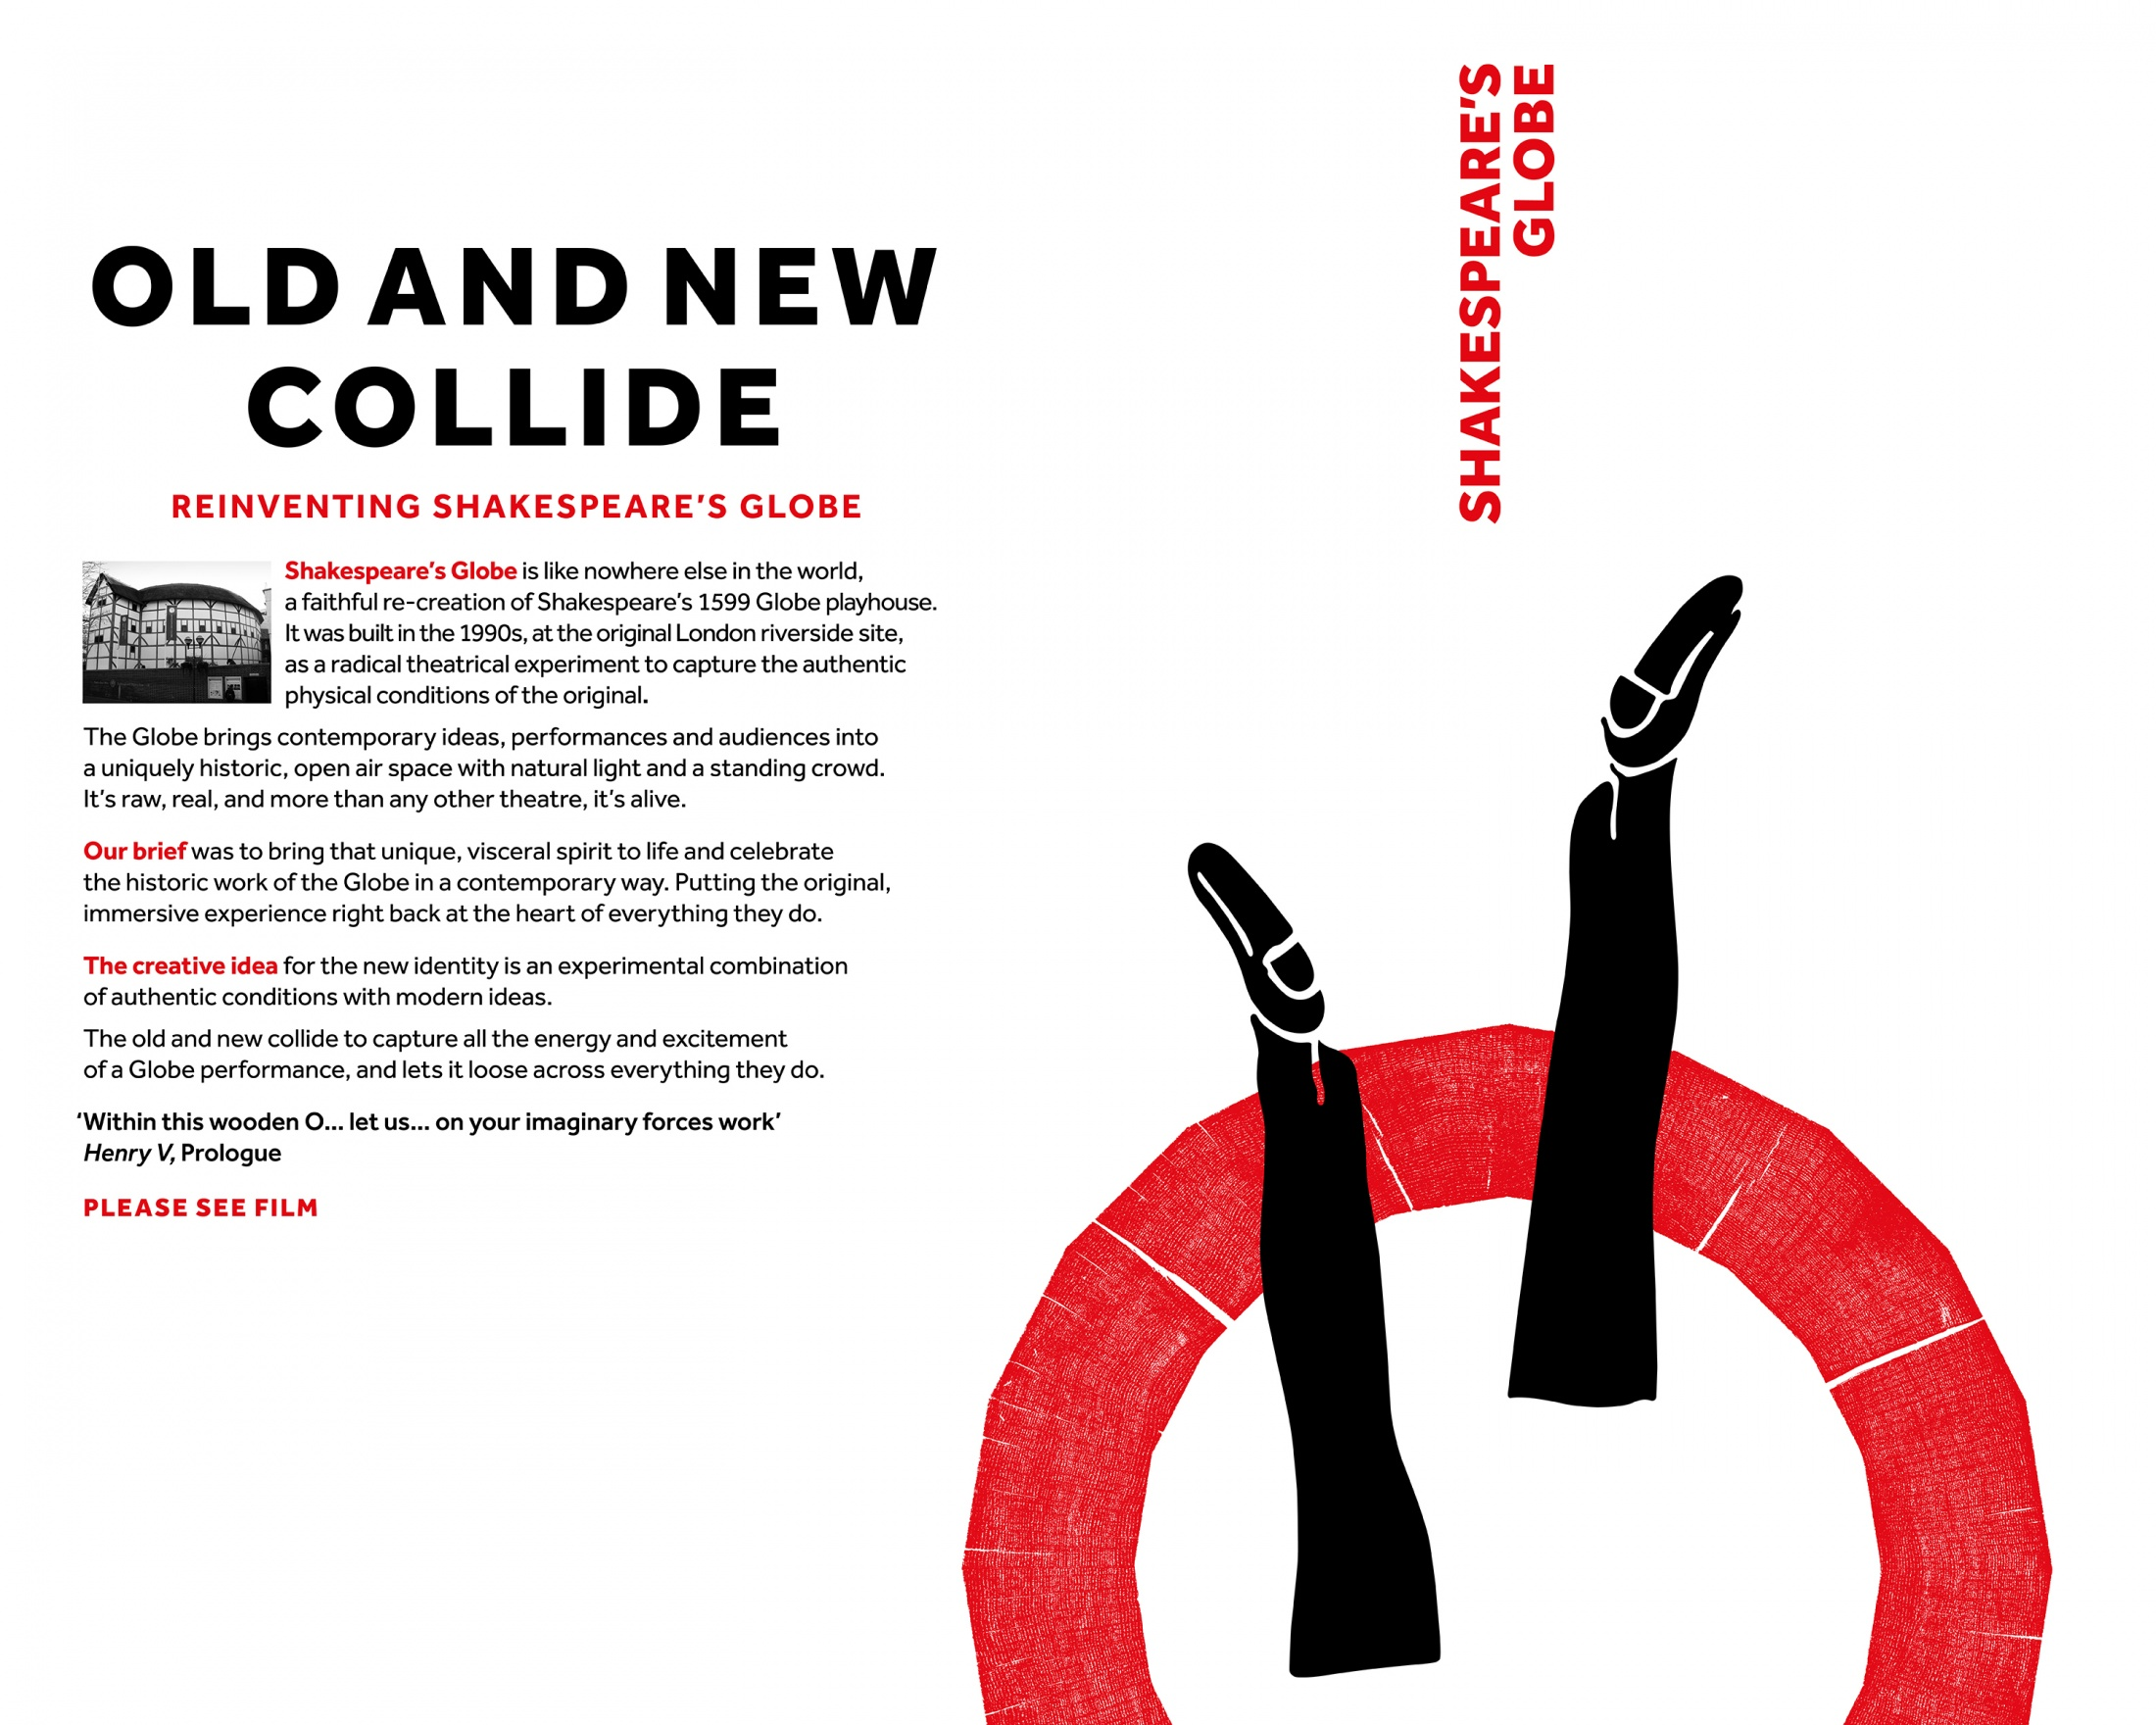 Thumbnail for The Old and new Collide: Reinventing the Shakespeare's Globe